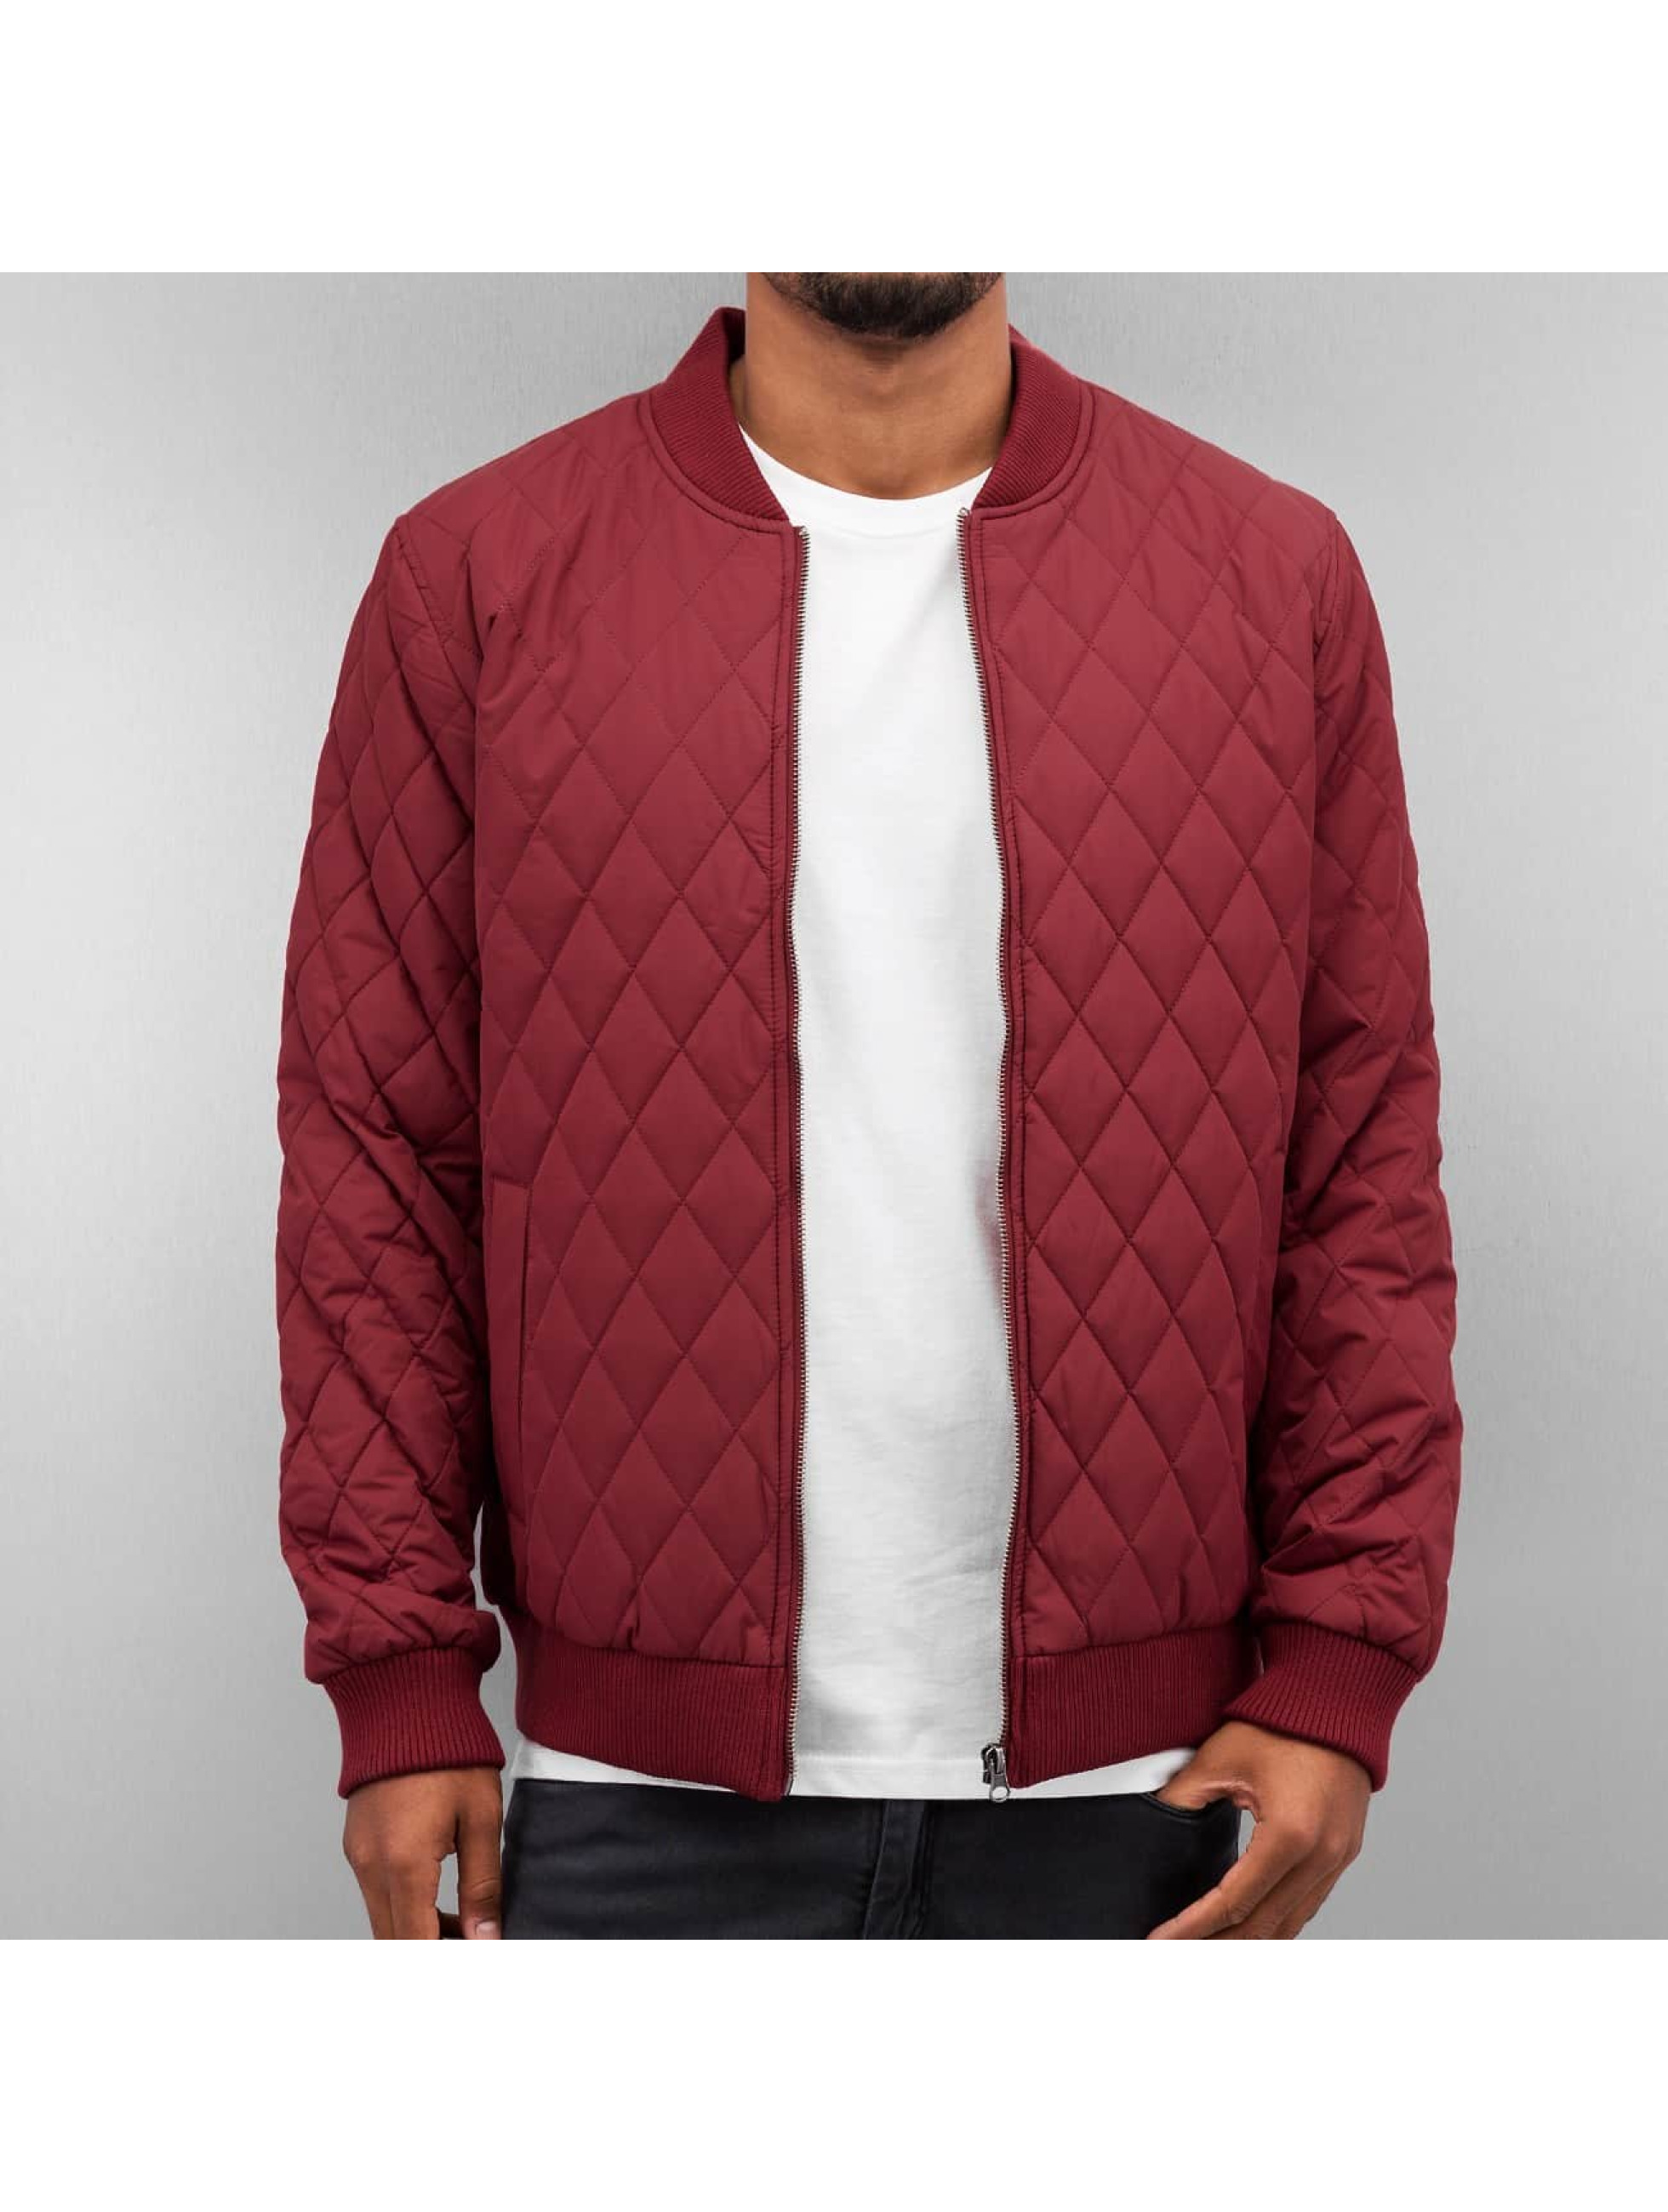 Cyprime jas / Zomerjas Quilted in rood